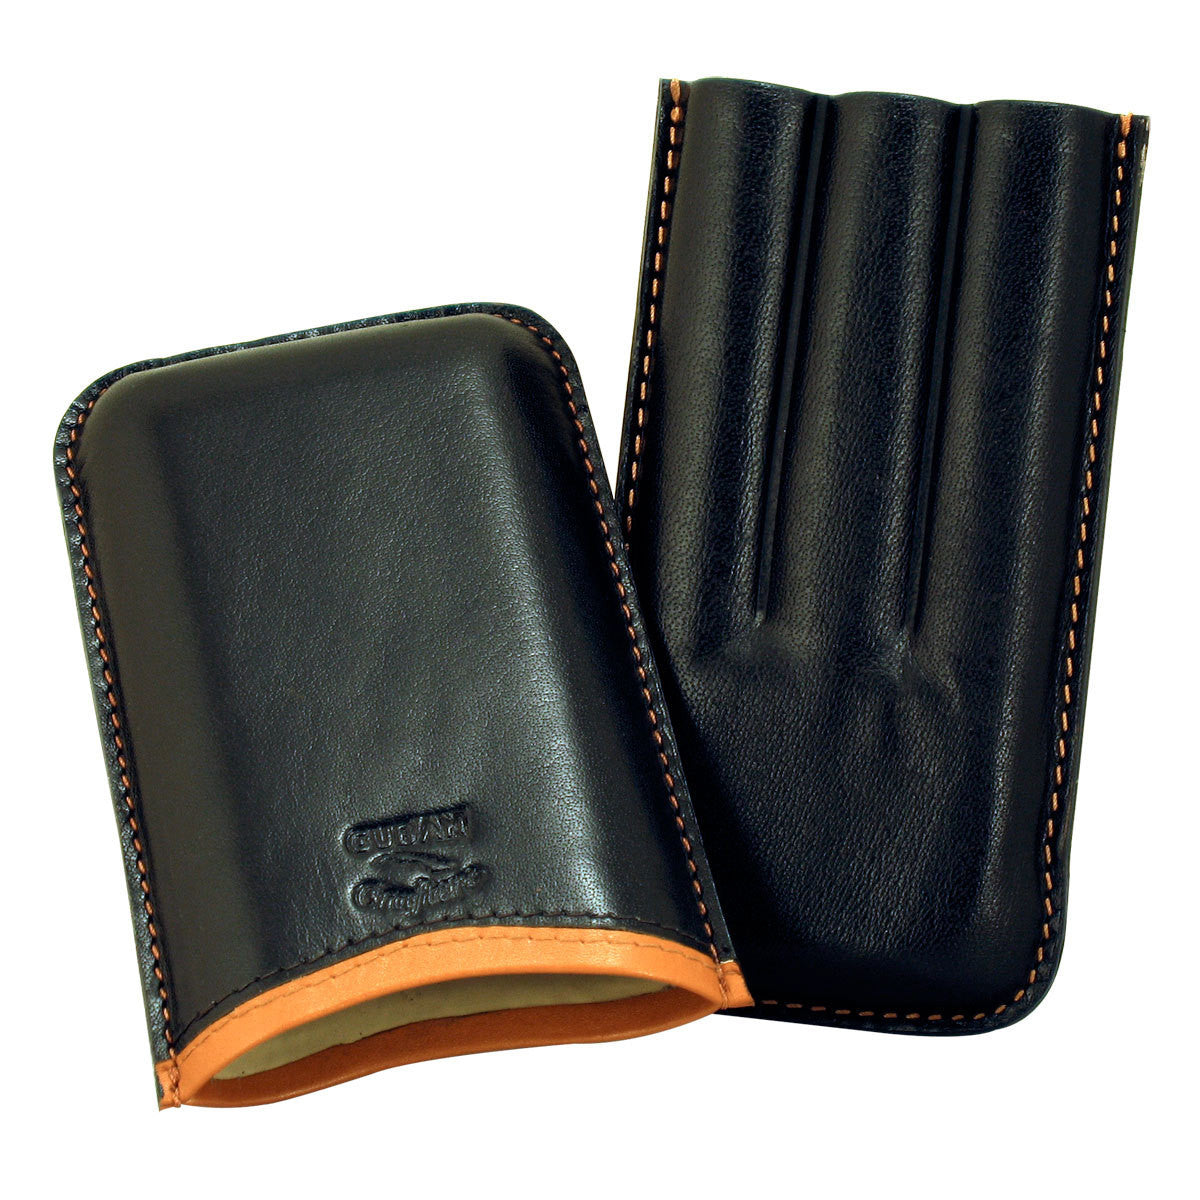 Cigar Case Leather Roma Black Saddle 3 Cigars - Cigar boulevard